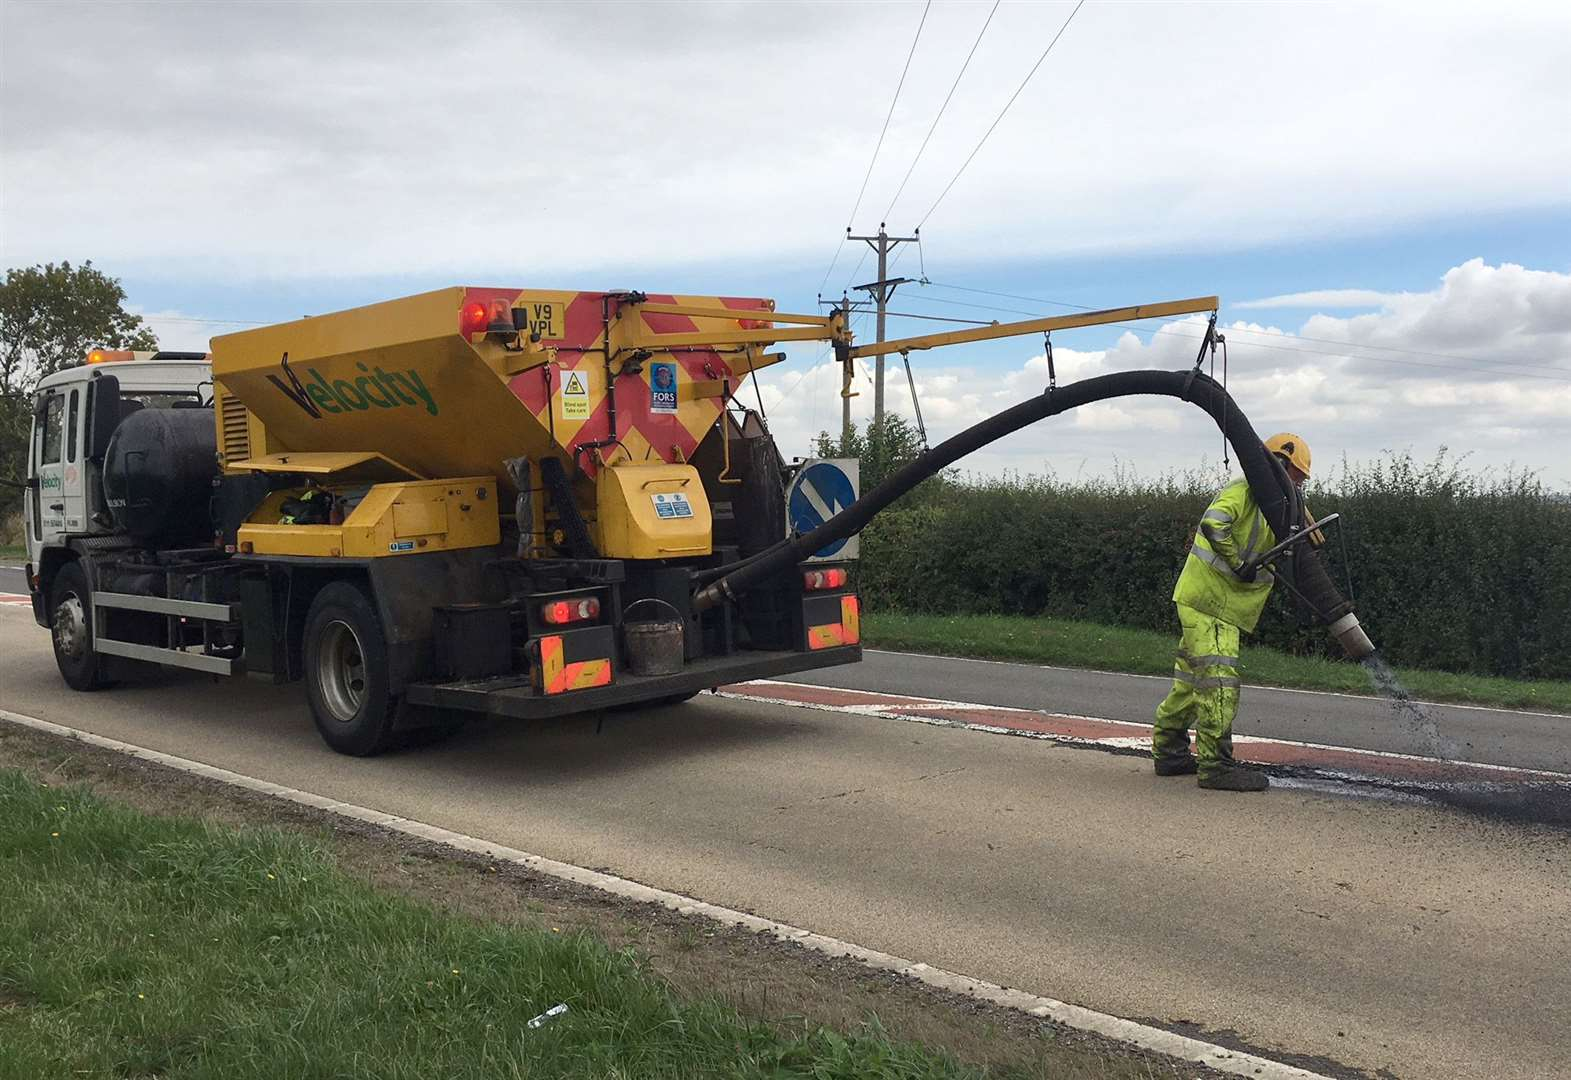 Council to invest £2.4m in county's roads